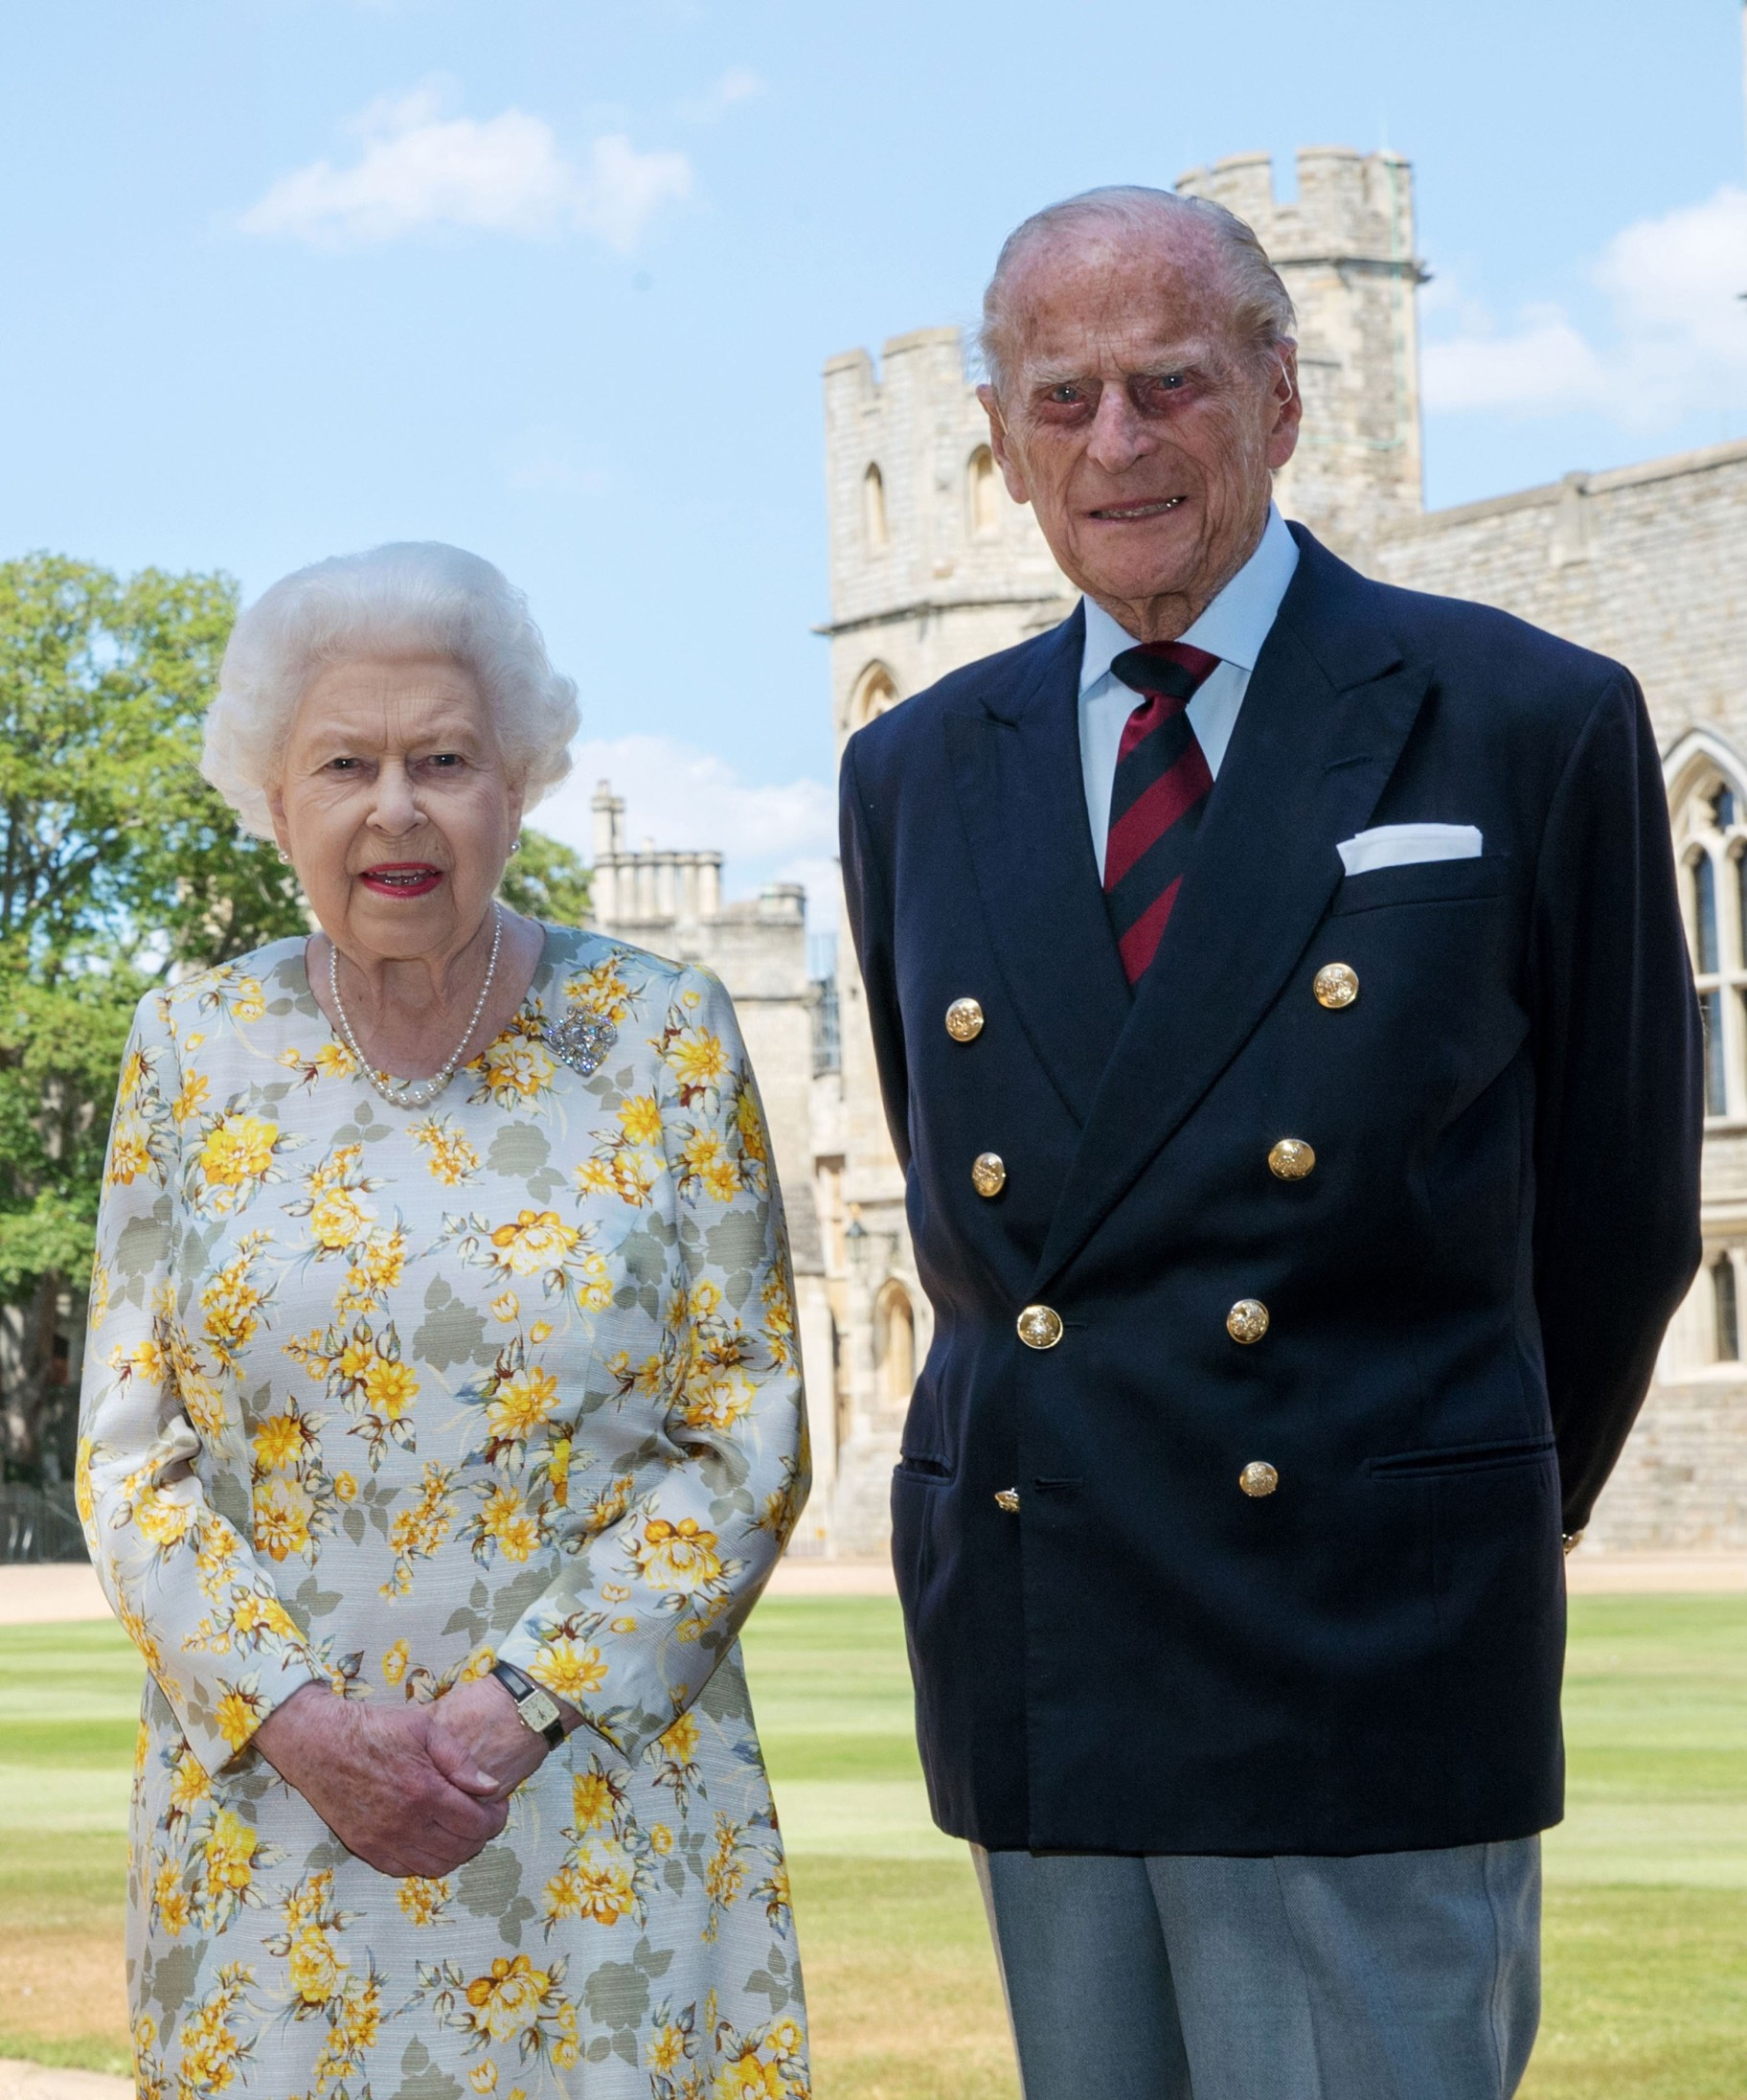 Queen Elizabeth II and the Duke of Edinburgh in the quadrangle at Windsor Castle, in a new photograph released to celebrate the Duke's  99th Birthday. The Queen is wearing an Angela Kelly dress with the Cullinan V diamond brooch. The Duke is wearing a Household Division tie. Picture: Pool / i-Images,Image: 529823829, License: Rights-managed, Restrictions: UK OUT.  End users shall not licence, sell, transmit, or otherwise distribute any photographs represented by eyevine, to any third party. Contact eyevine for more information: Tel: +44 (0) 20 8709 8709 Email: info@eyevine.com, Model Release: no, Credit line: i-Images / Eyevine / Profimedia